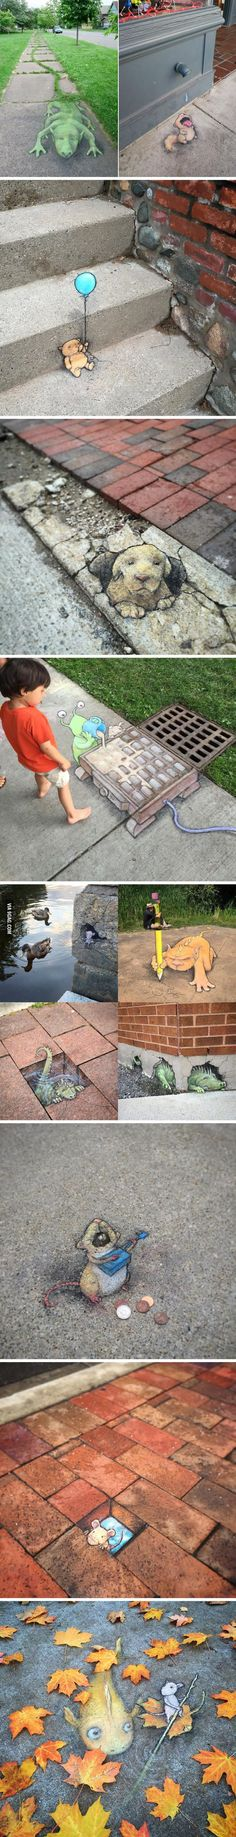 Adorable sidewalk art pops up in Ann Arbor - 9GAG